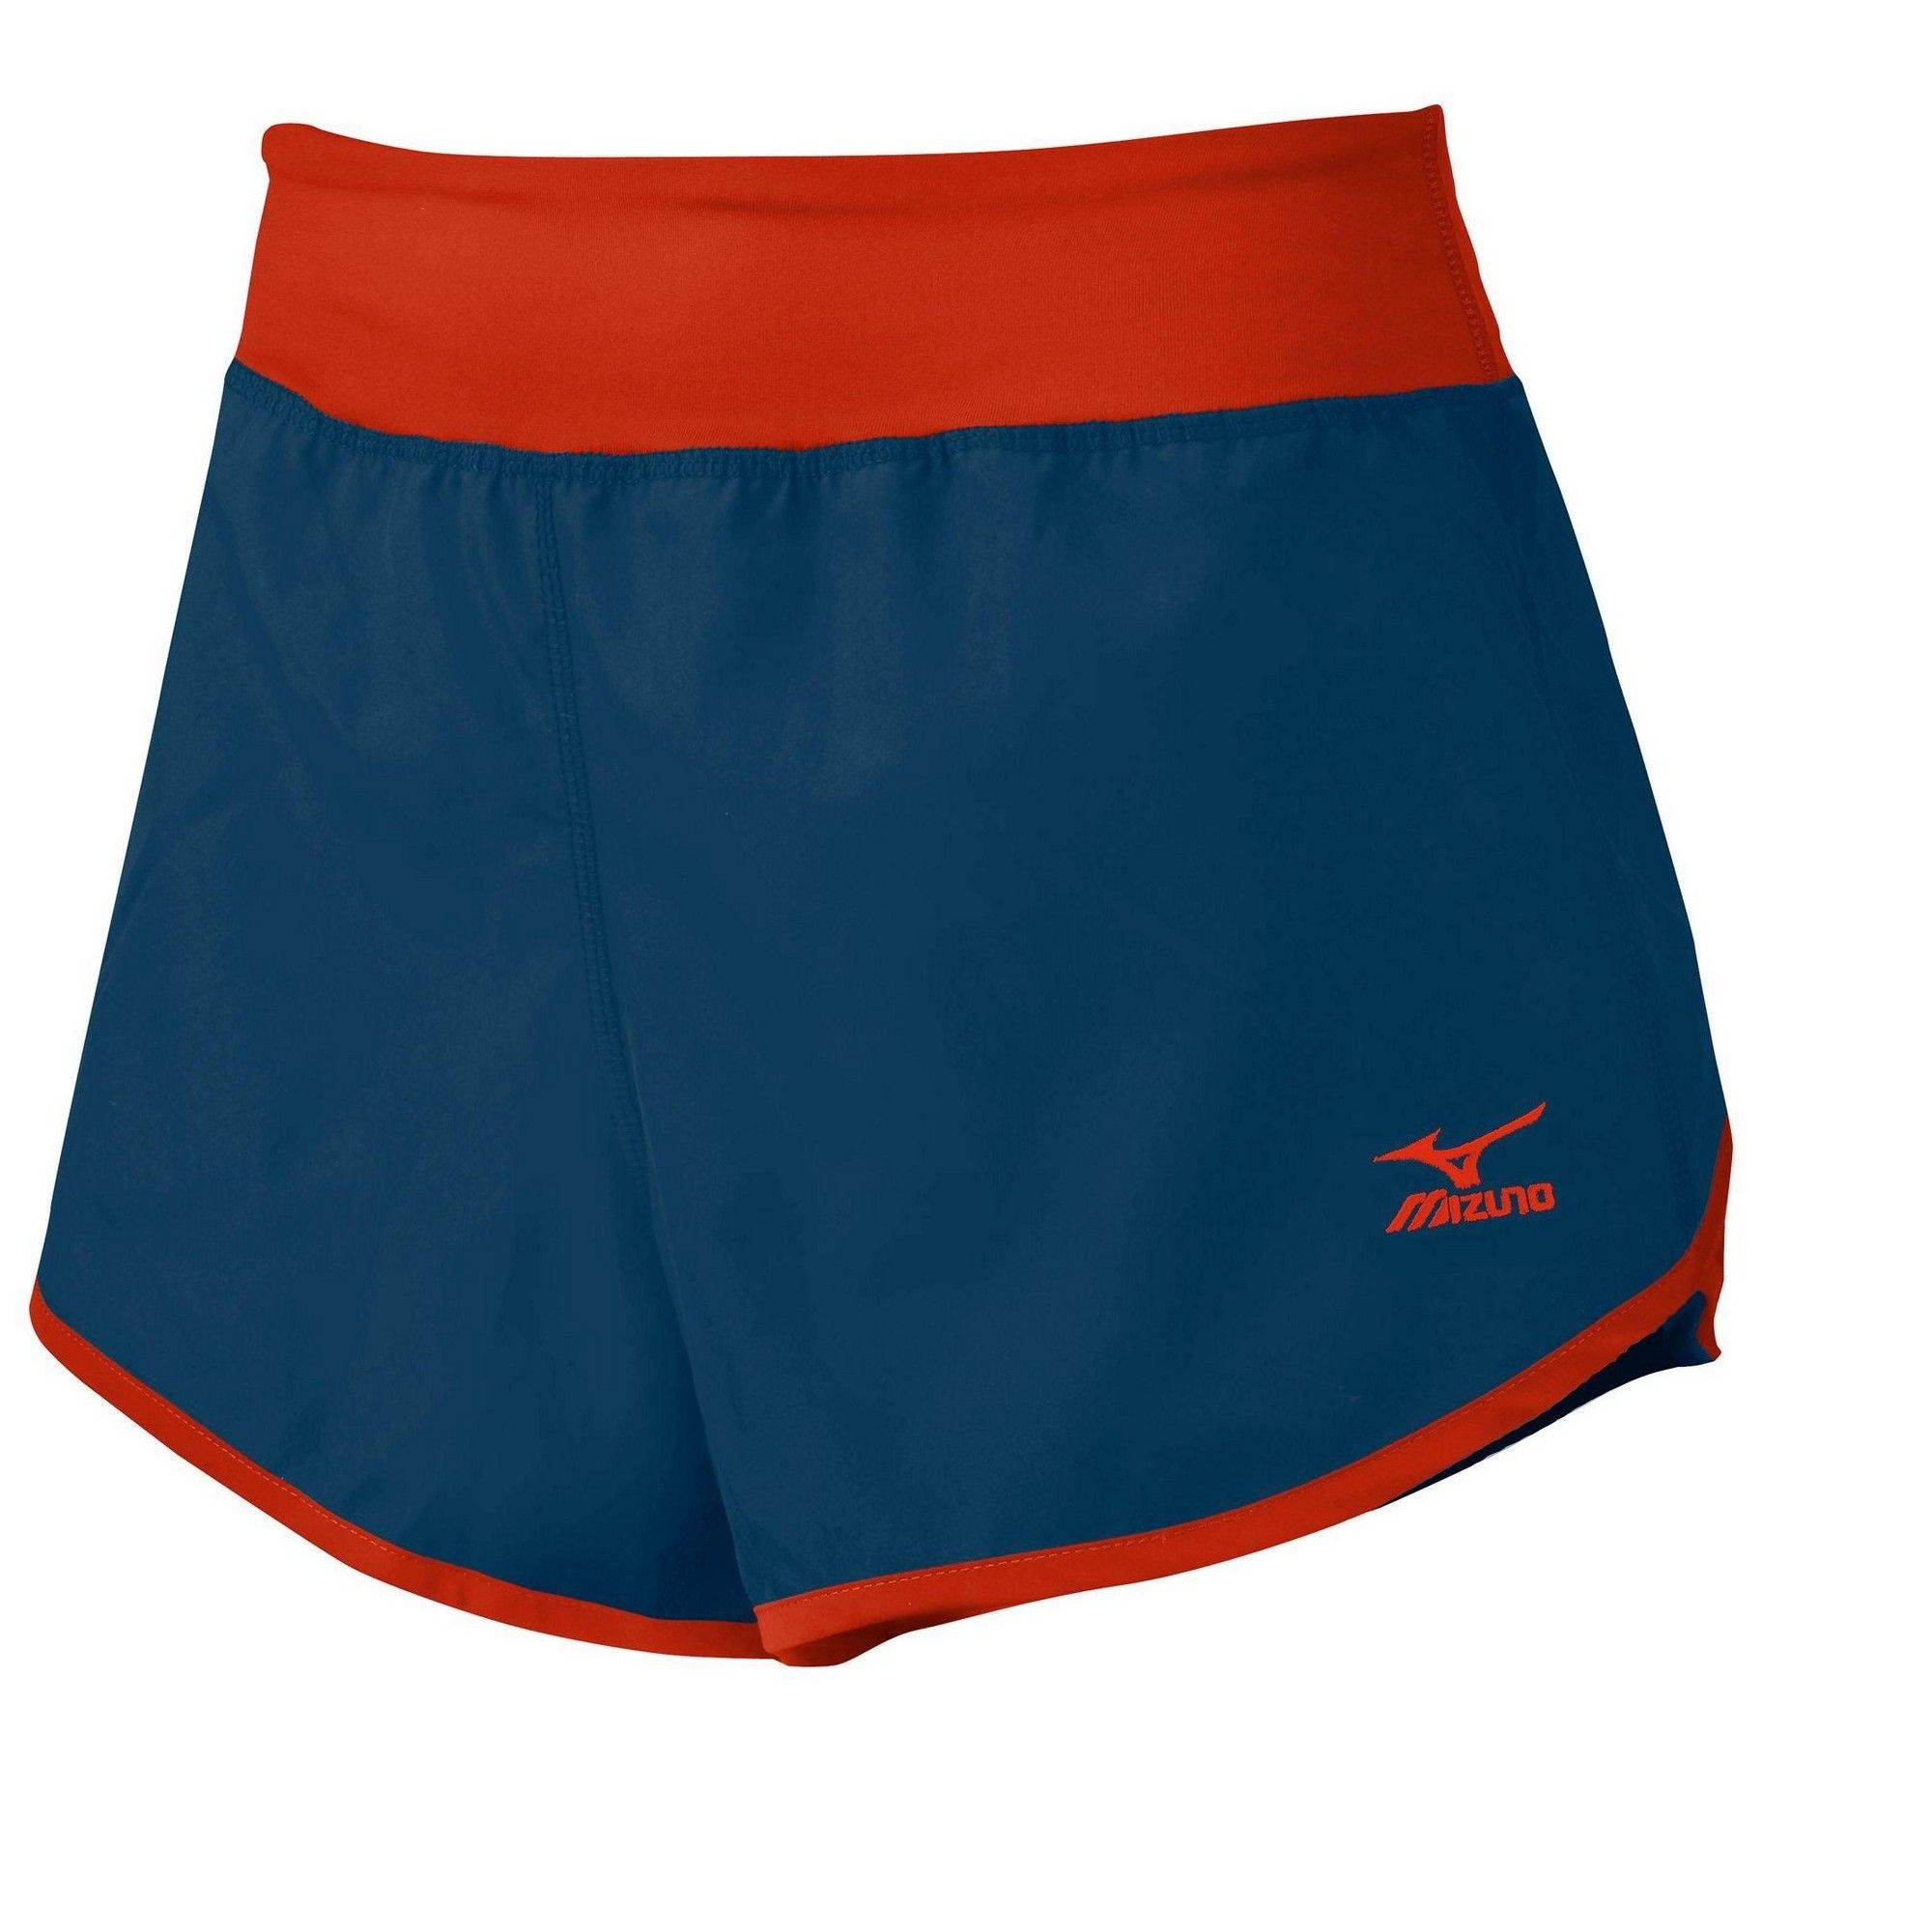 Mizuno Women S Elite 9 Dynamic Cover Up Volleyball Short Womens Size Extra Small In Color Navy Red 5110 Volleyball Outfits